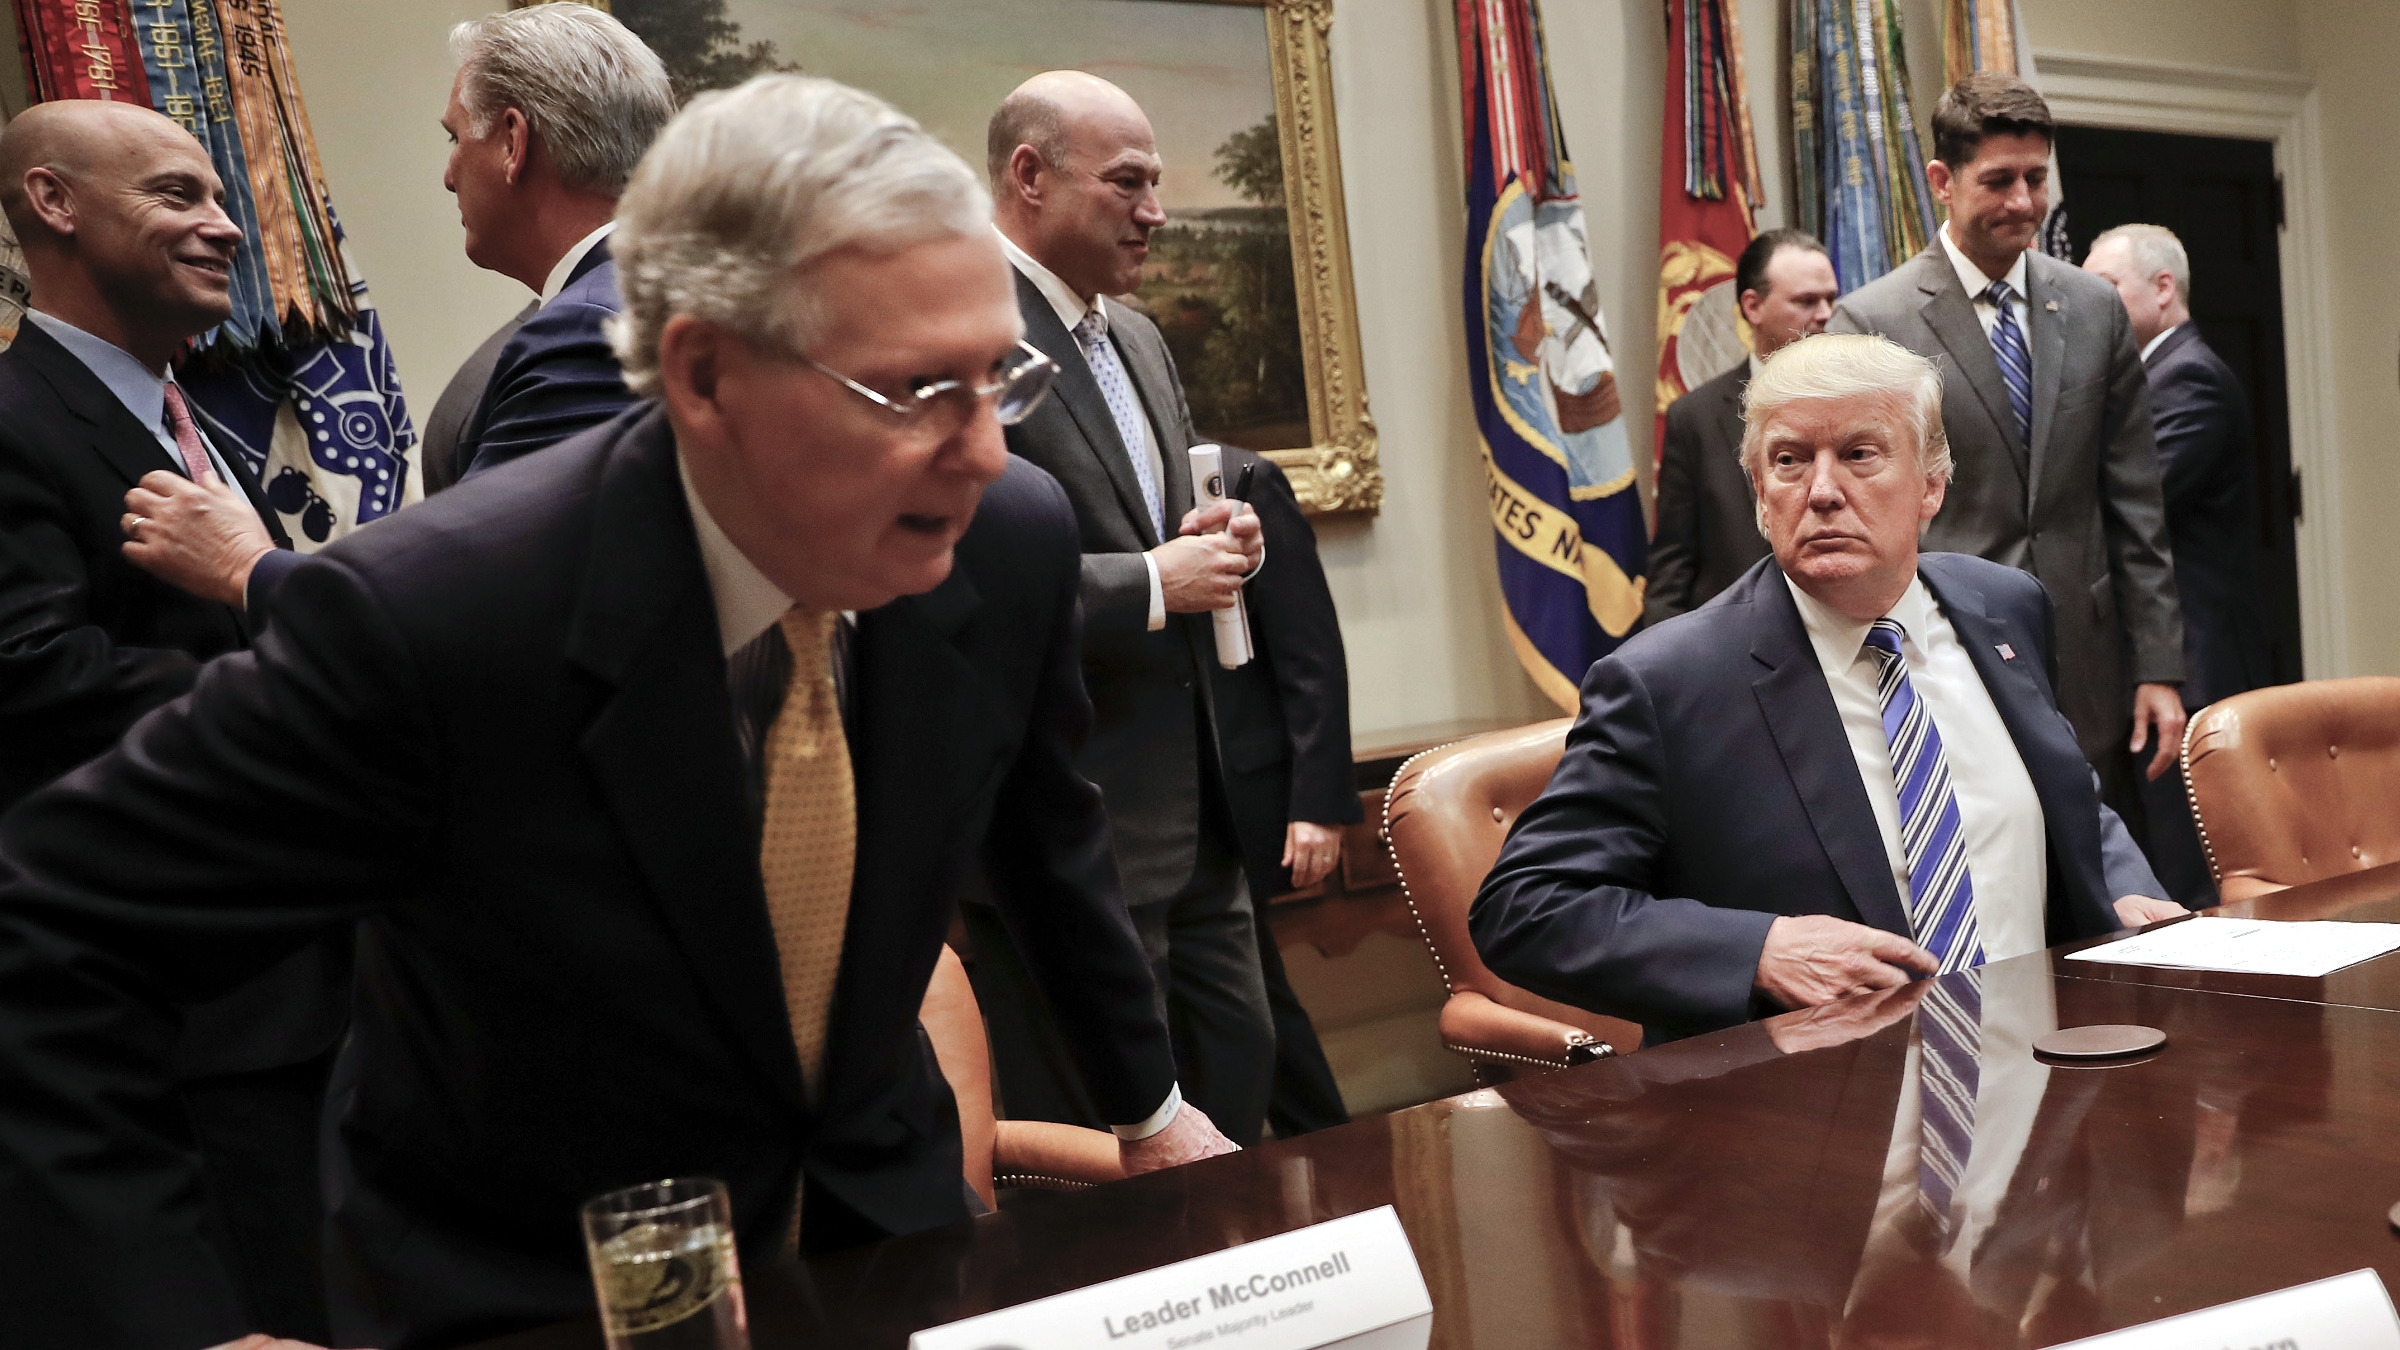 President Donald Trump, center, waits for Senate Majority Leader Mitch McConnell of Ky., left, and House Speaker Paul Ryan of Wis., right, to take their seats to begin a meeting with House and Senate Leadership in the Roosevelt Room of the White House in Washington, Tuesday, June 6, 2017. Also at the meeting are from left, Marc Short White House Director of Legislative Affairs for President Donald Trump, House Majority Leader Kevin McCarthy of Calif., National Economic Council chairman Gary Cohn and Senior adviser to President Donald Trump Jared Kushner.